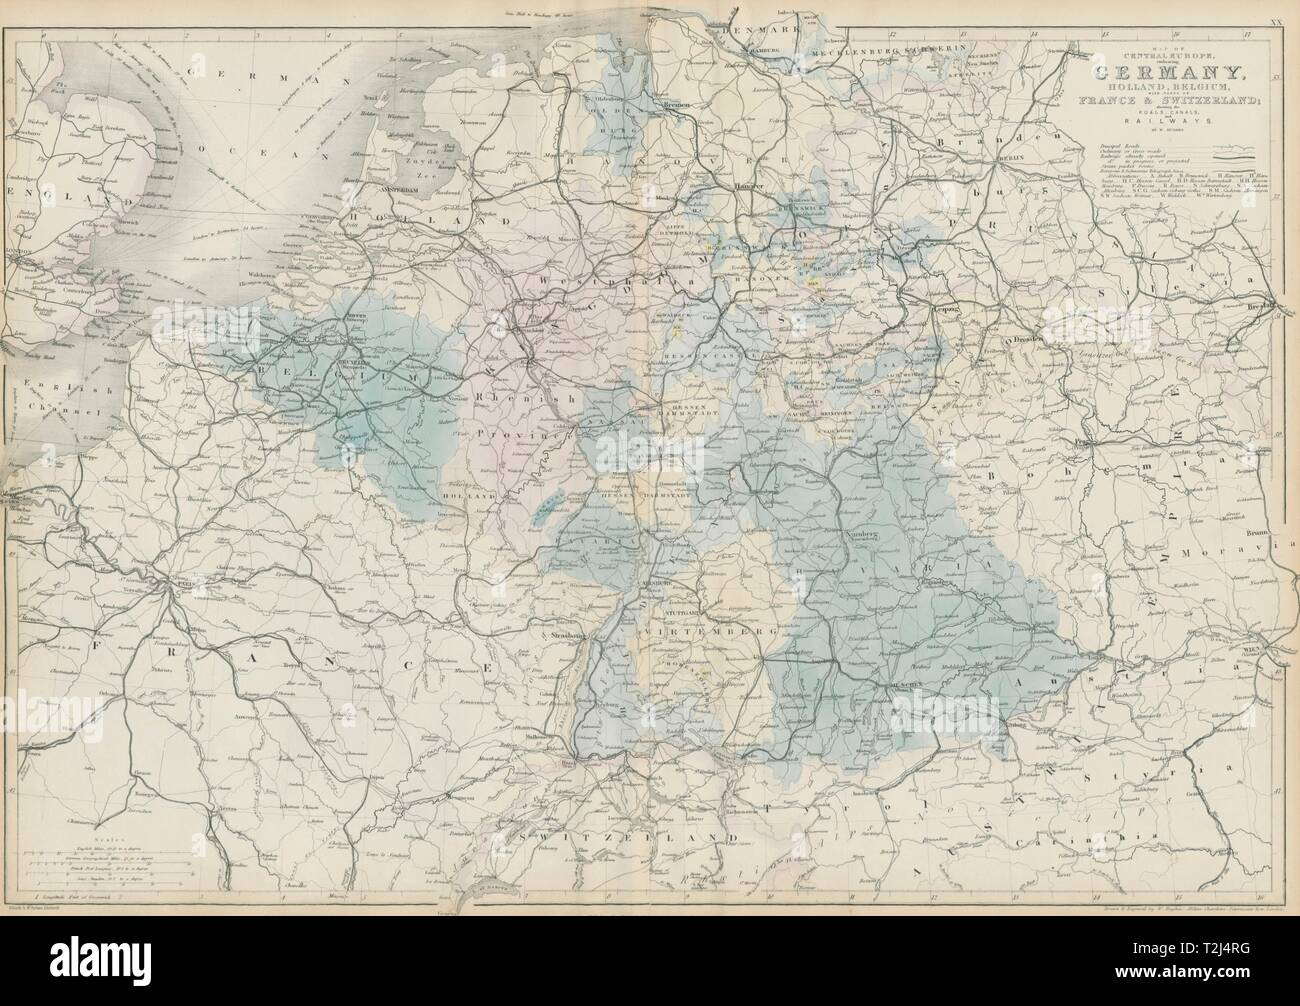 Map Of Central Germany.Central Europe Roads Canals Railways Germany Holland Belgium